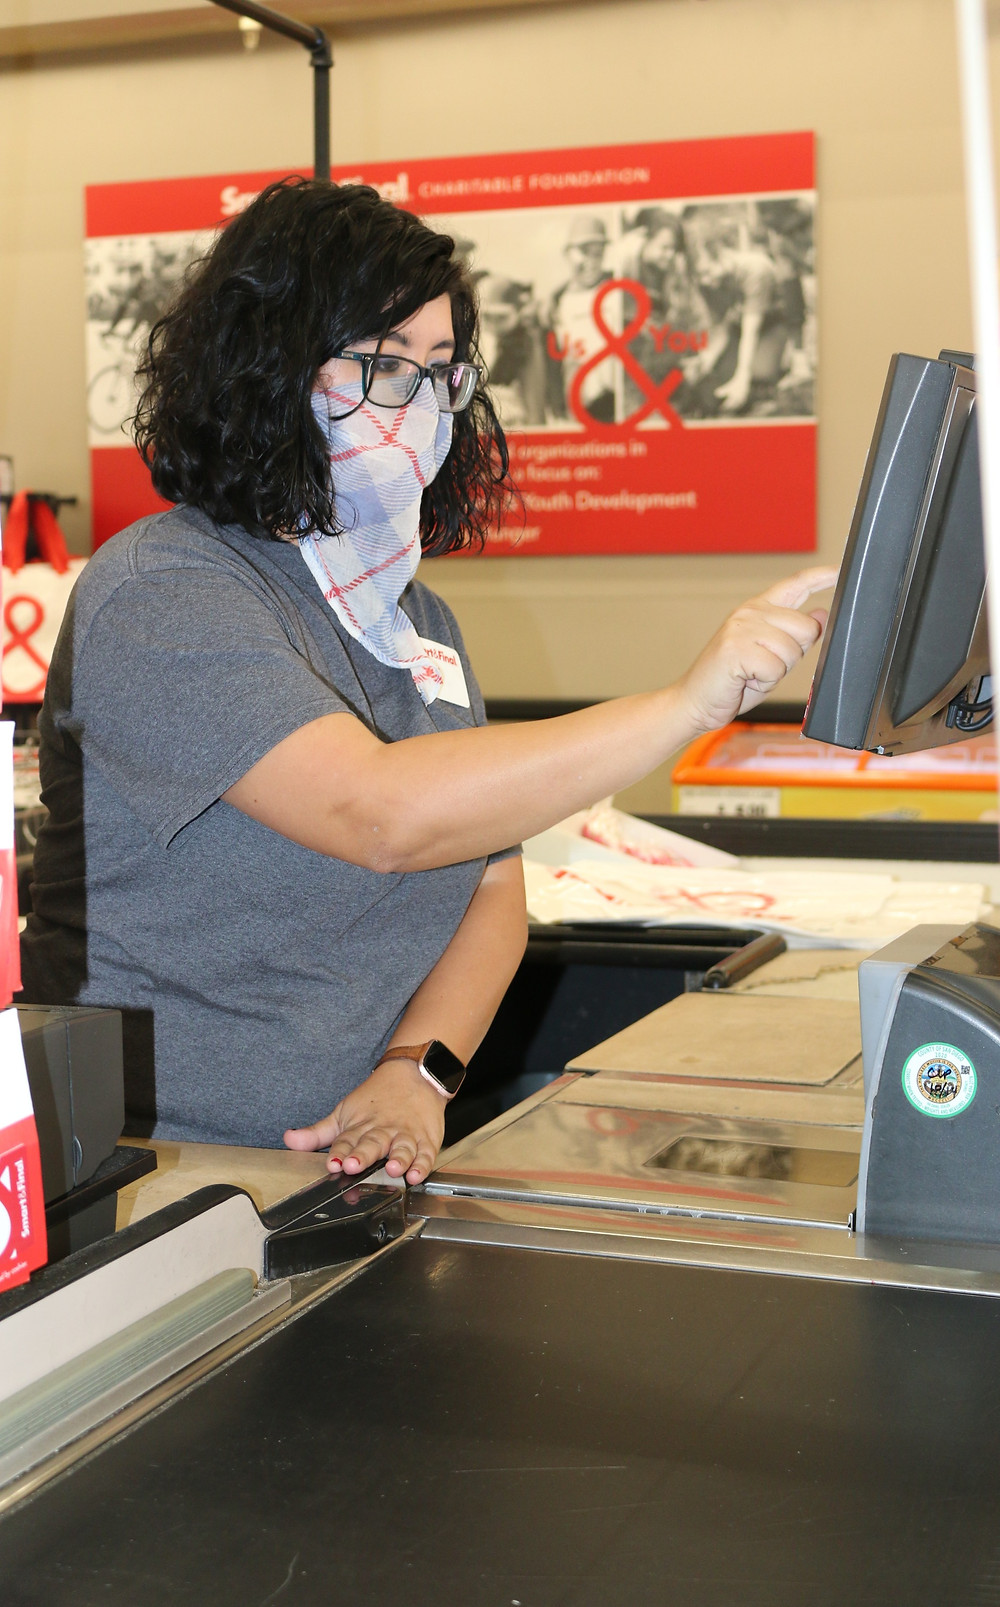 Kym operating the register at Smart & Final.